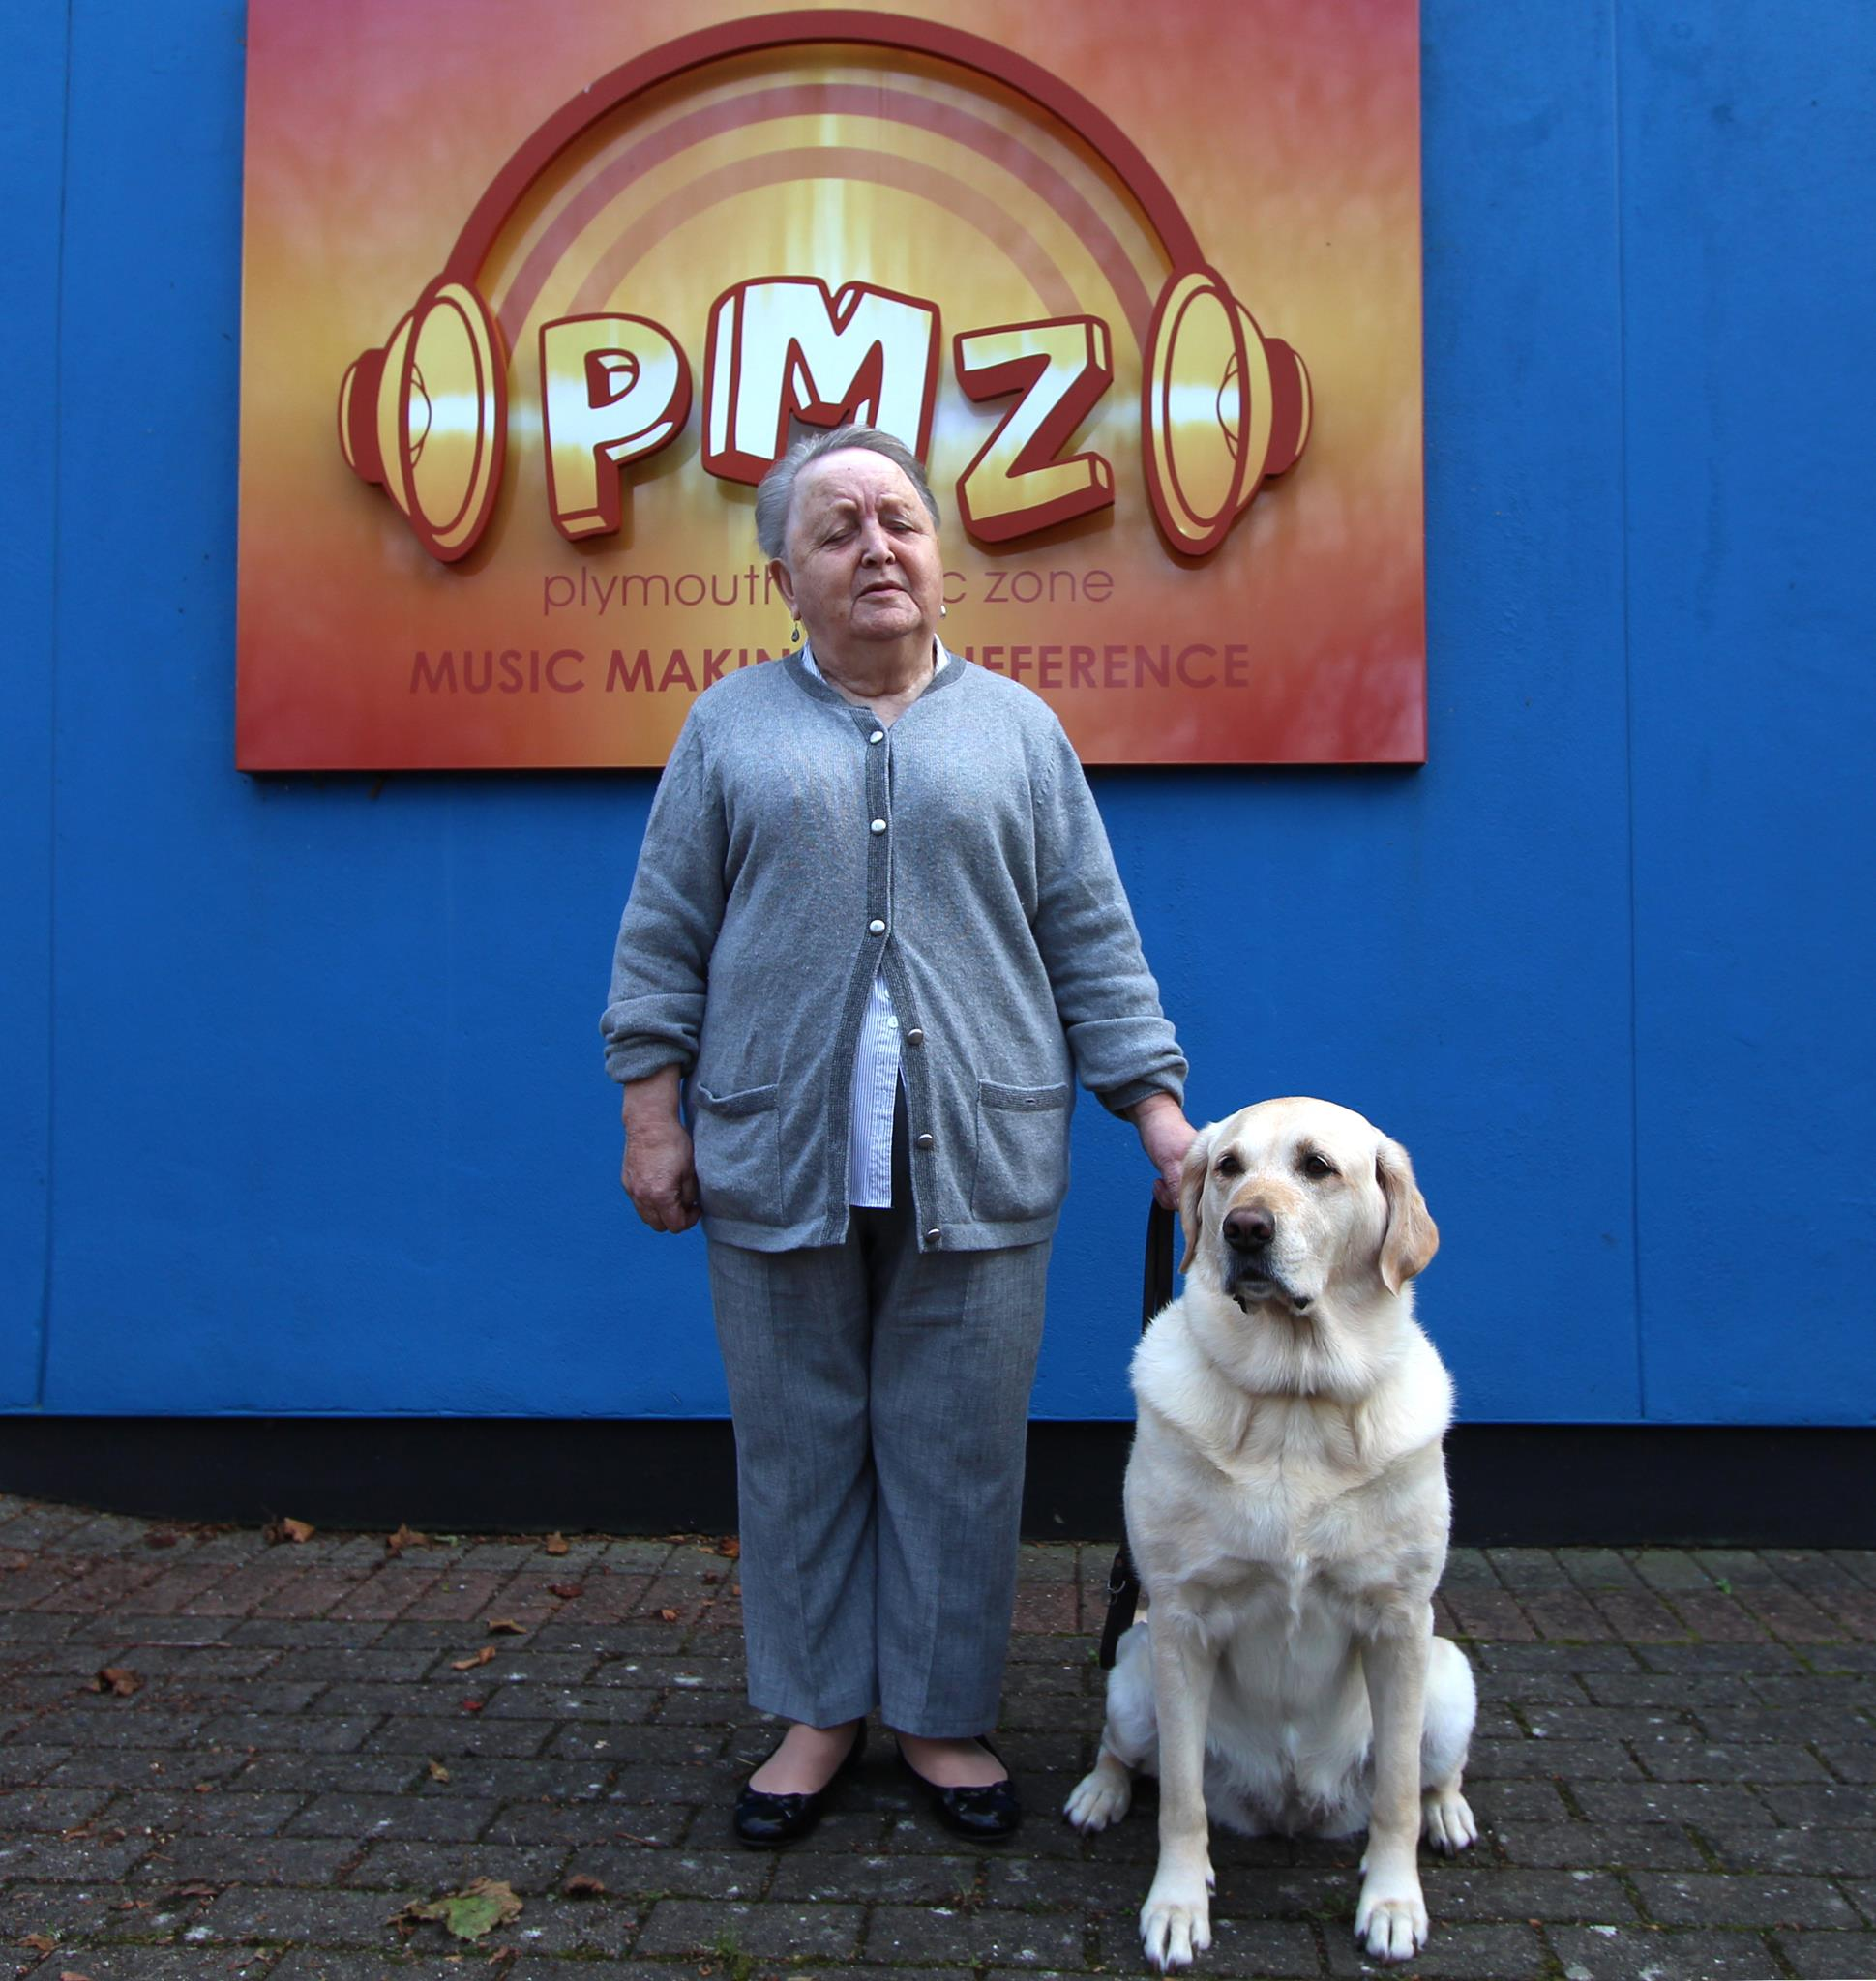 Pat & her guide-dog, Ziggy outside the PMZ building